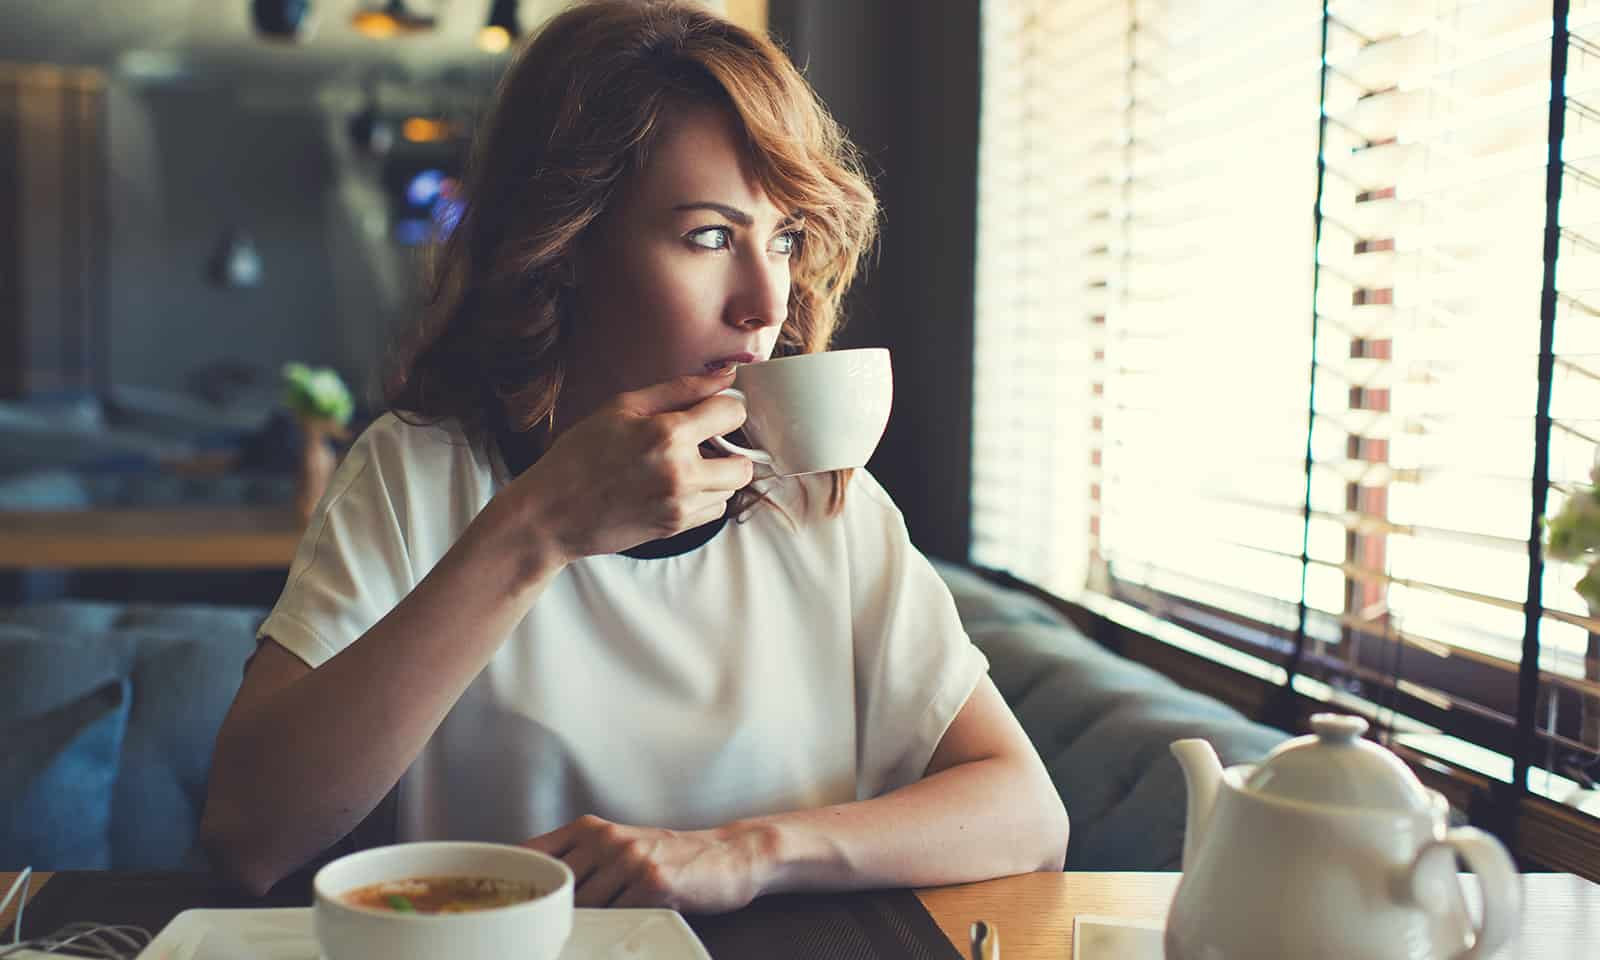 how-to-indentify-eating-disorder-how-to-help-main-image-girl-in-diner